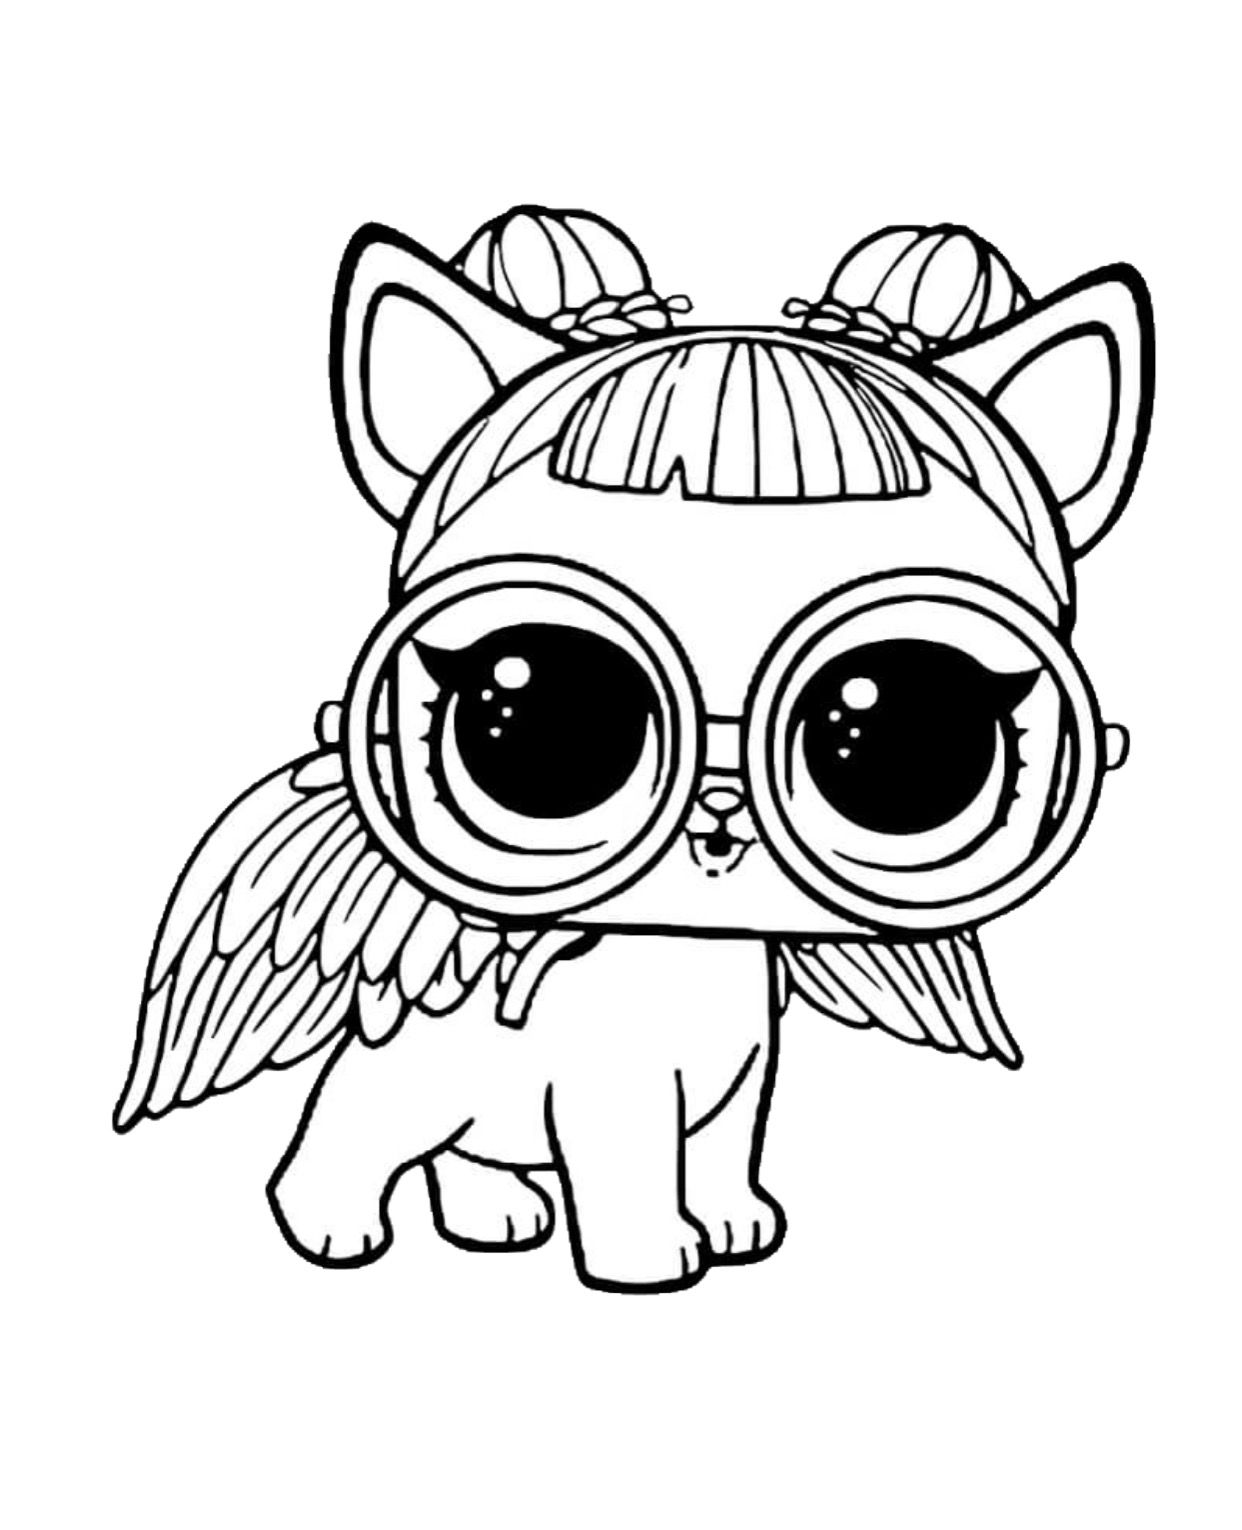 36+ Printable lol pets coloring pages ideas